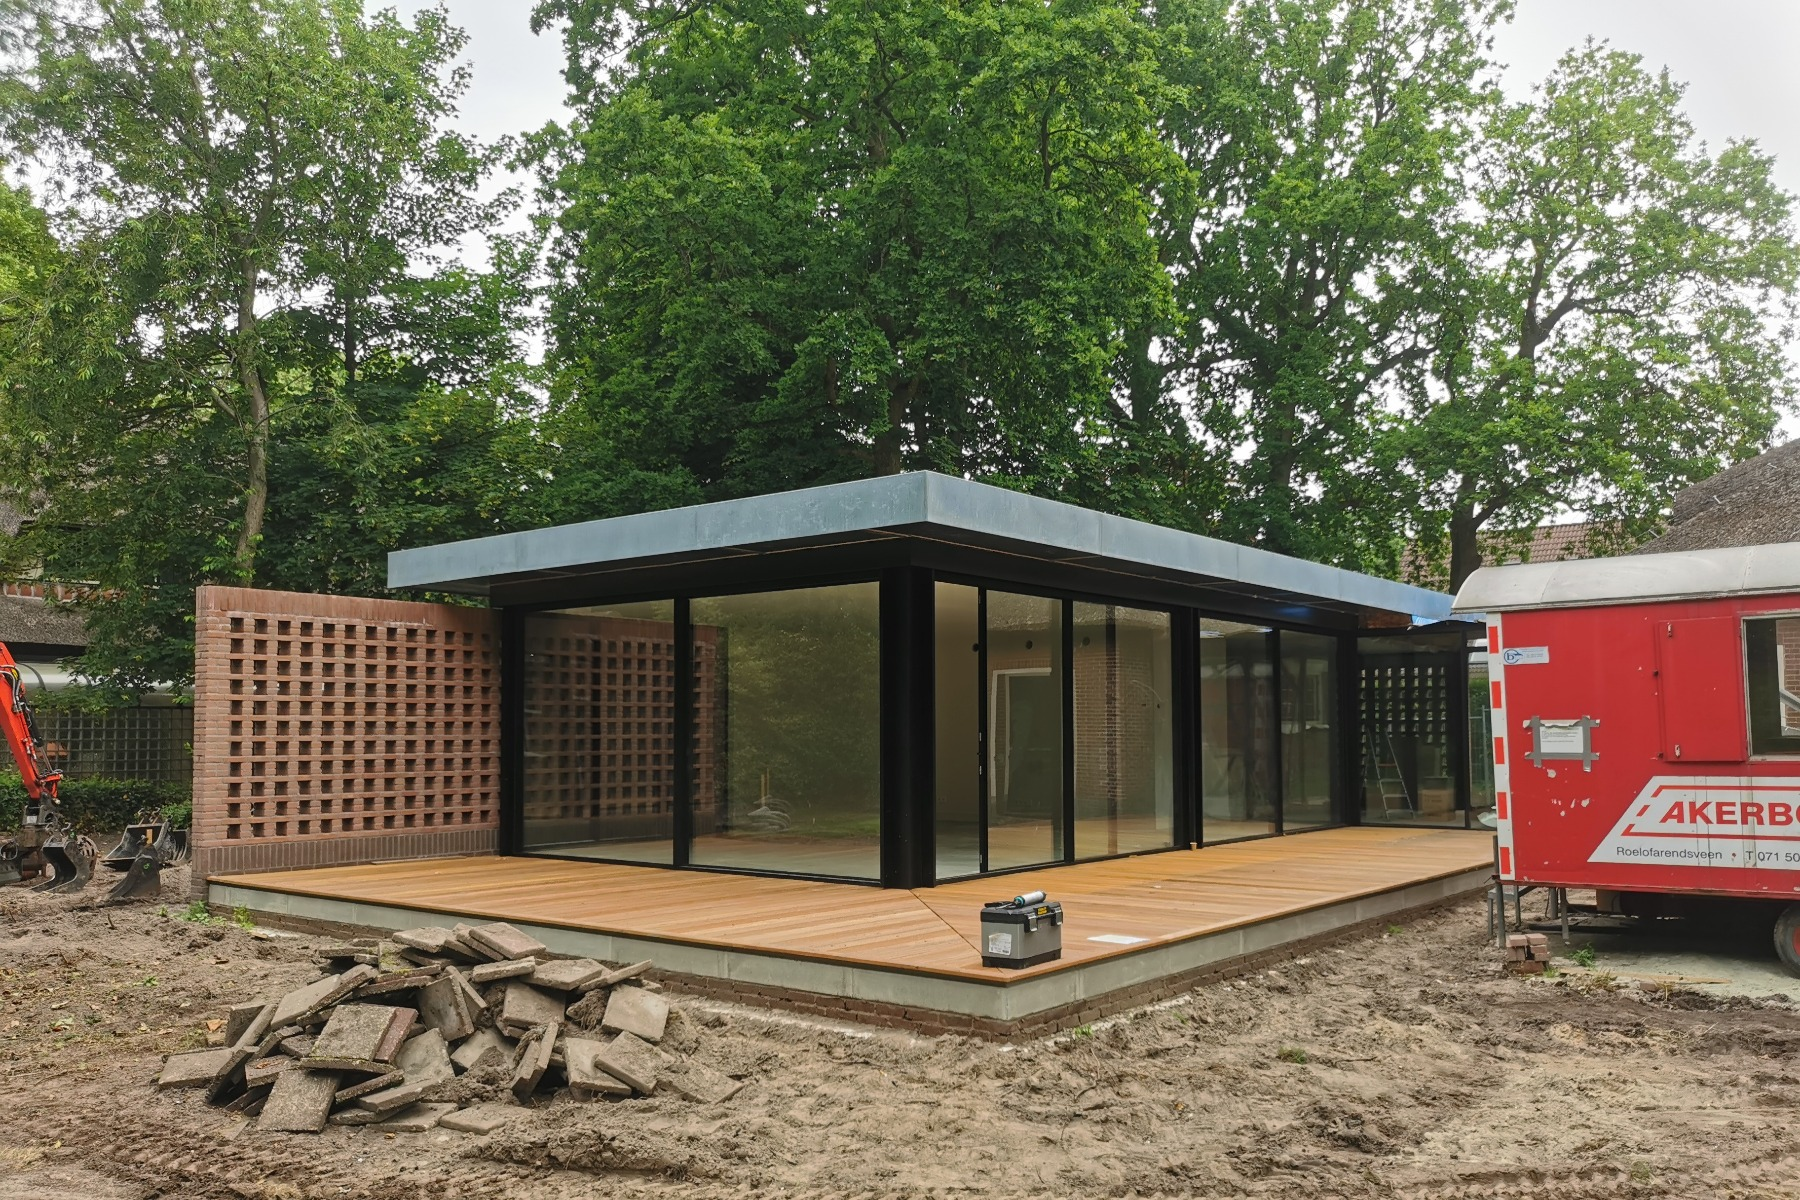 Ons bouwproject in Warmond